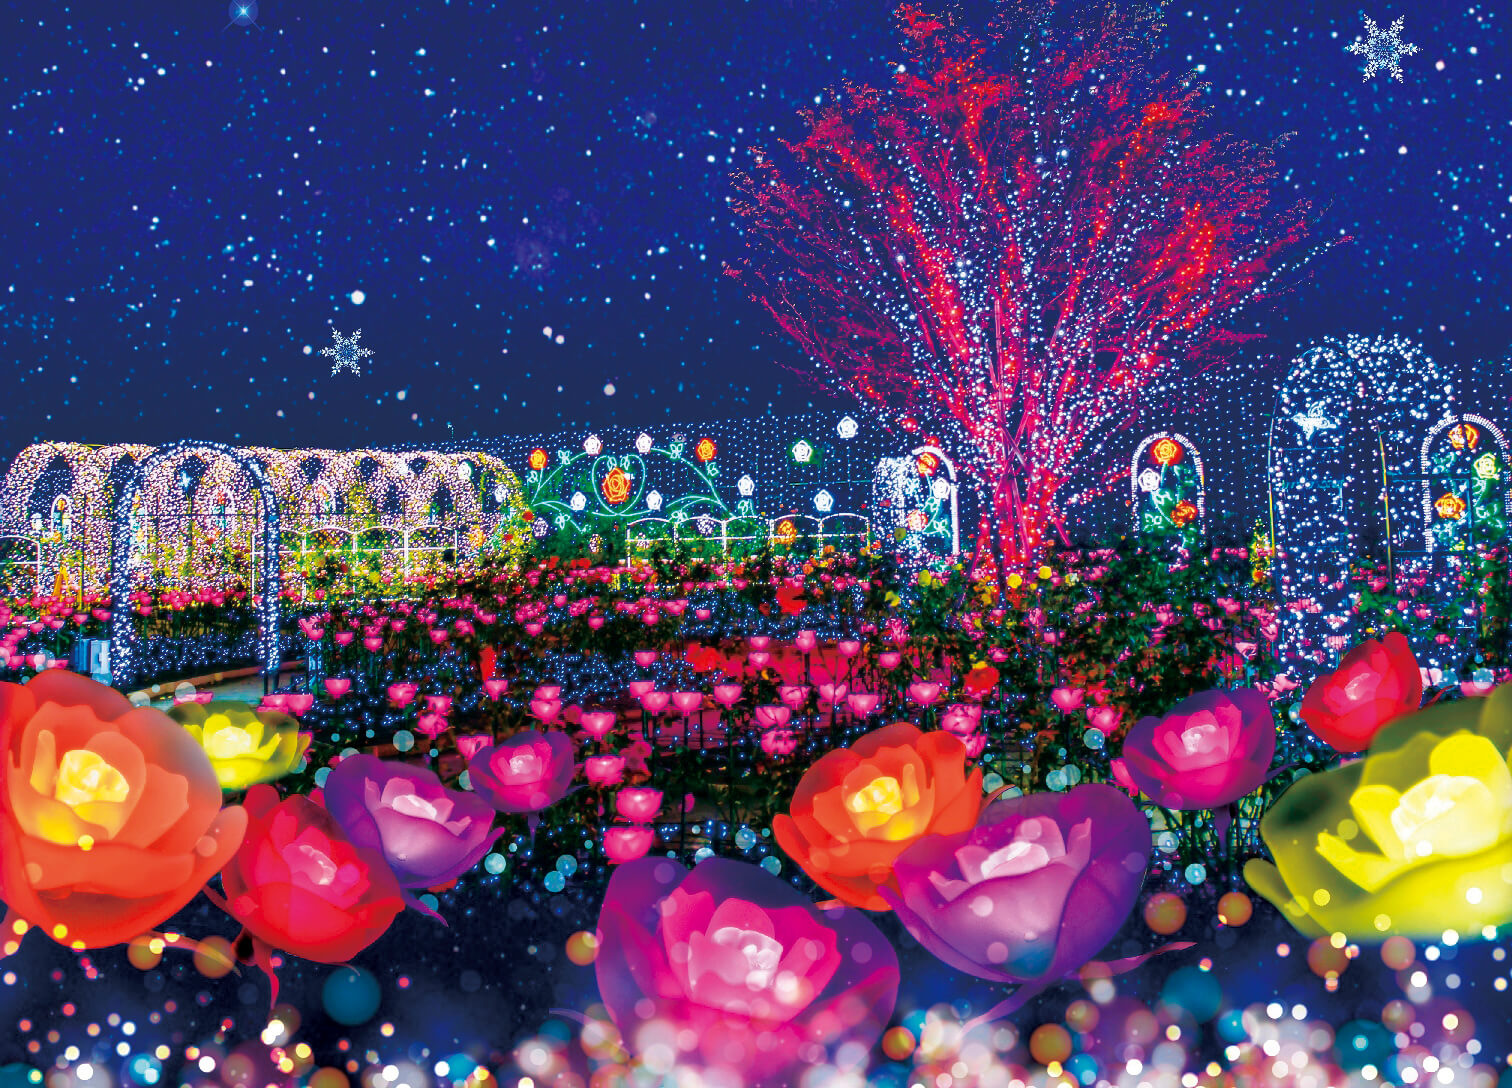 あしかがフラワーパーク ashikaga flower park illumination